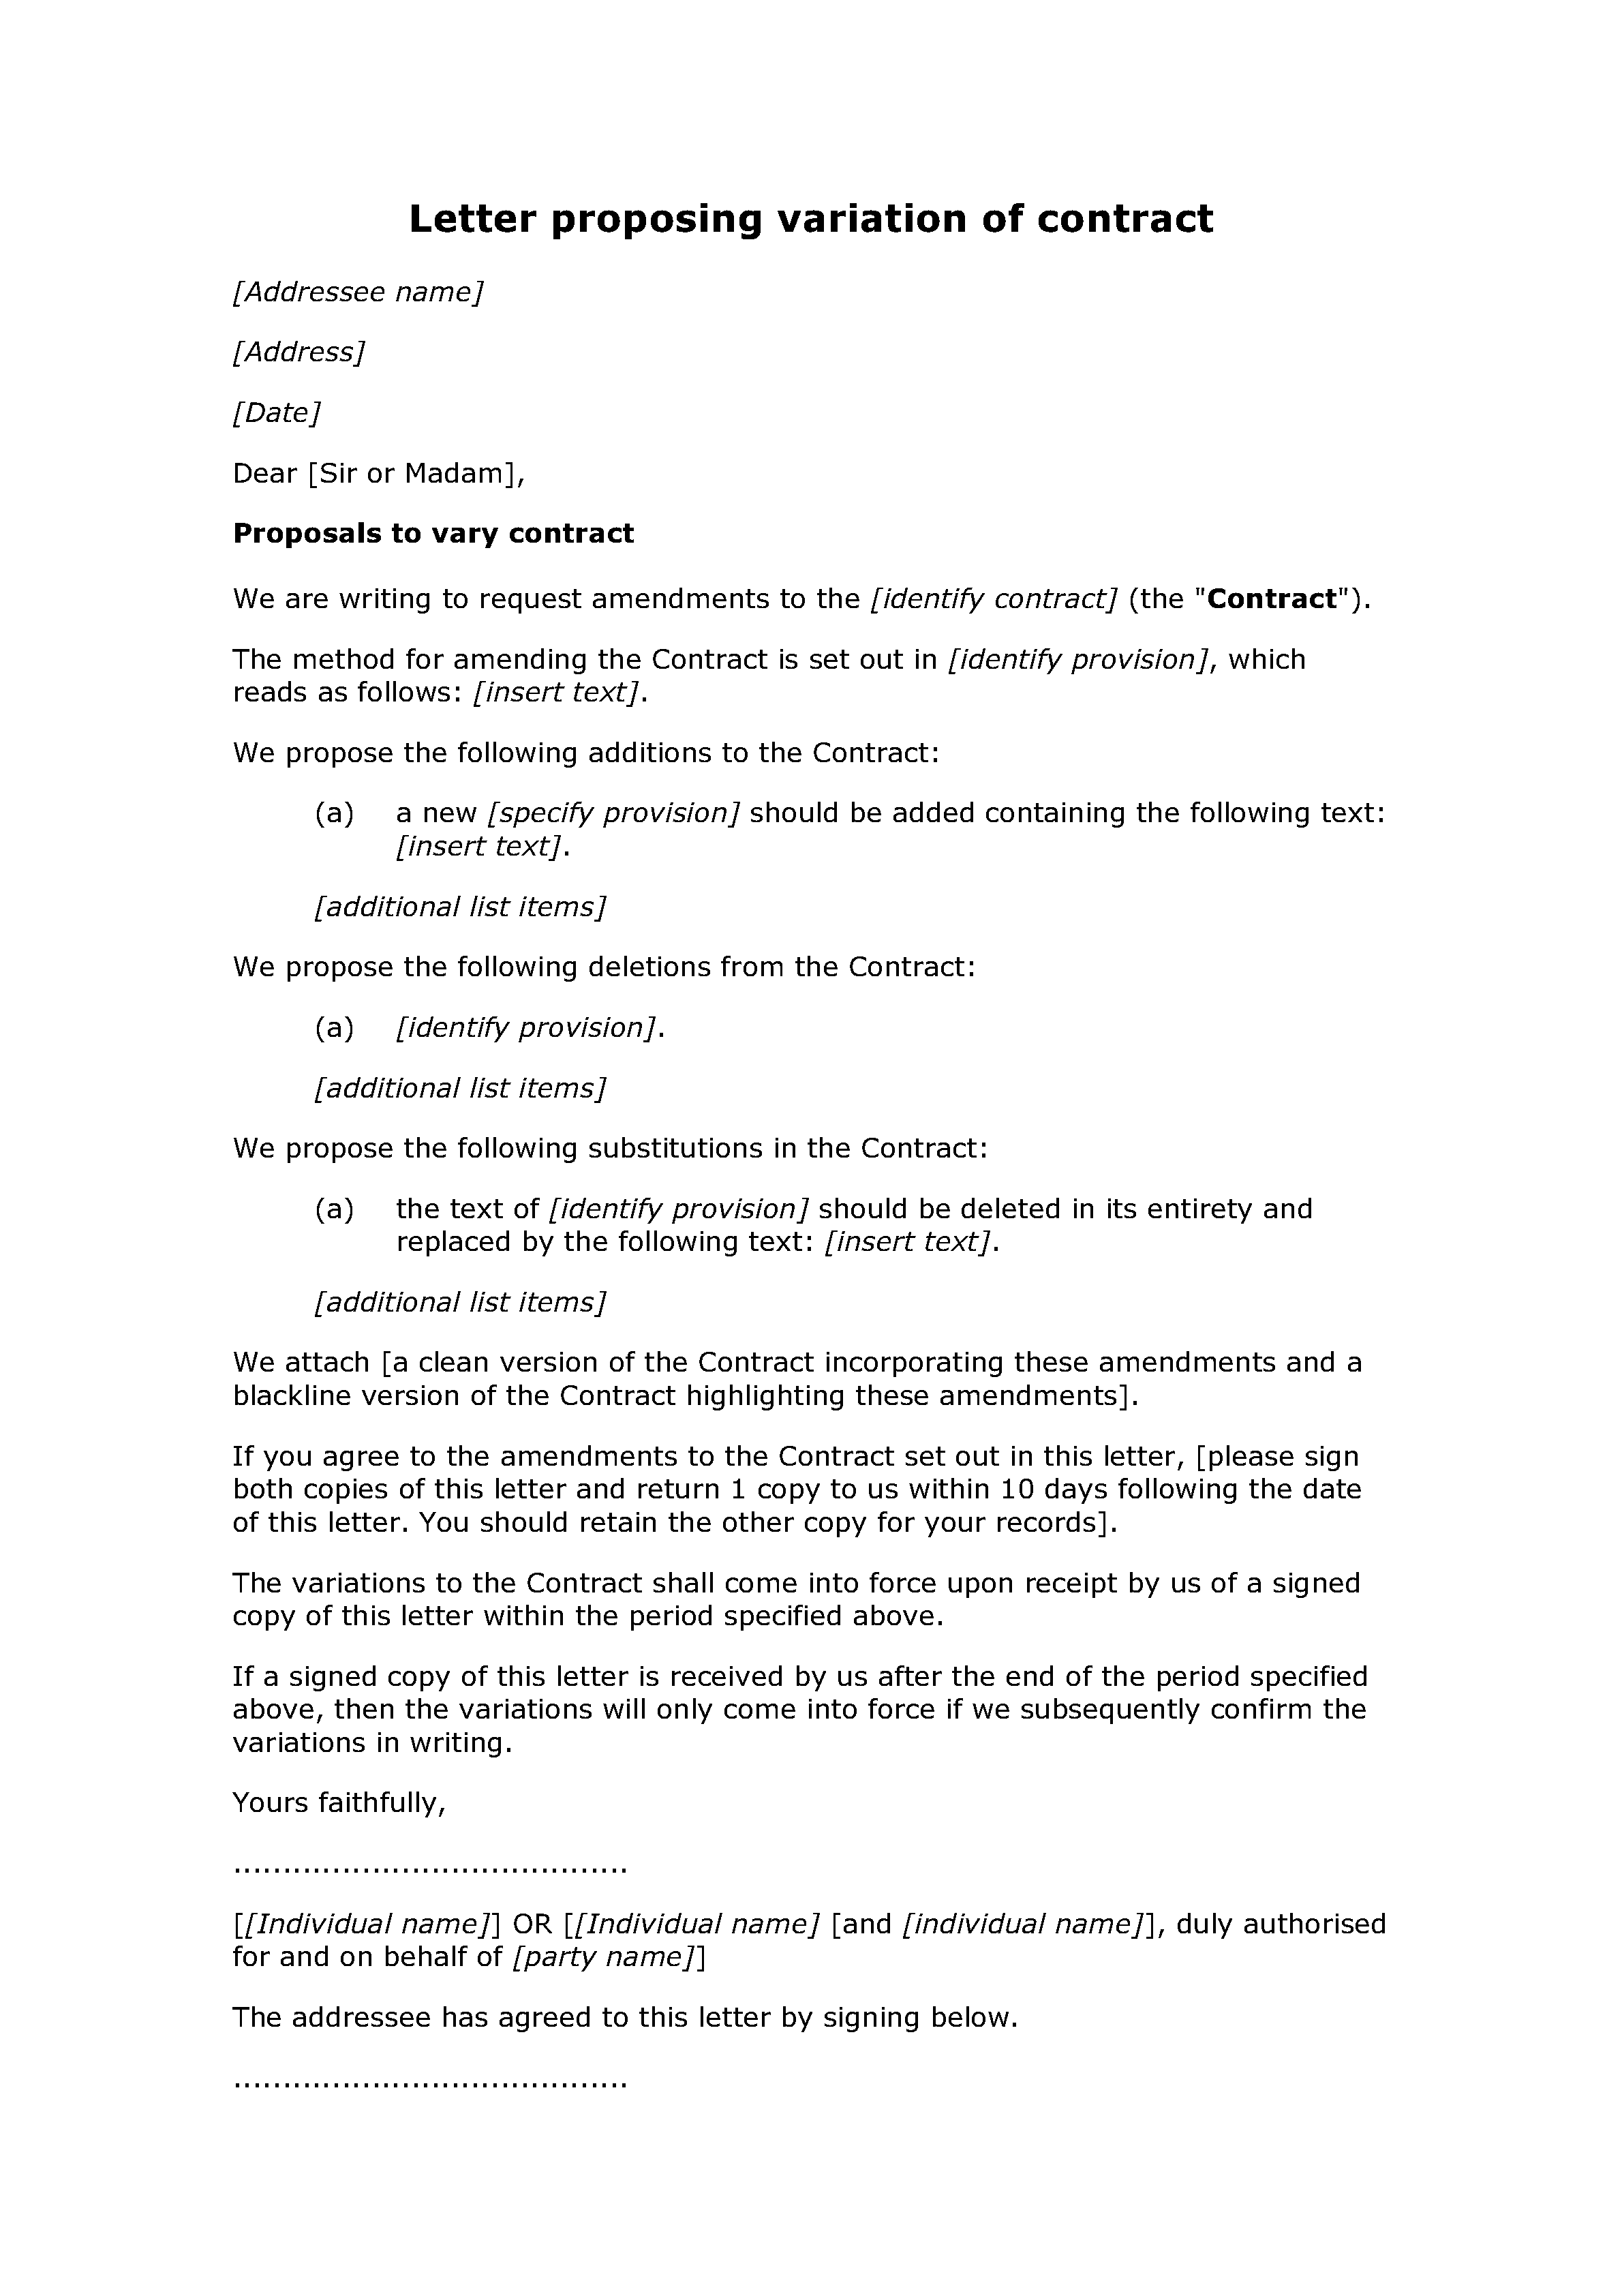 Letter proposing variation of contract docular letter proposing variation of contract document preview spiritdancerdesigns